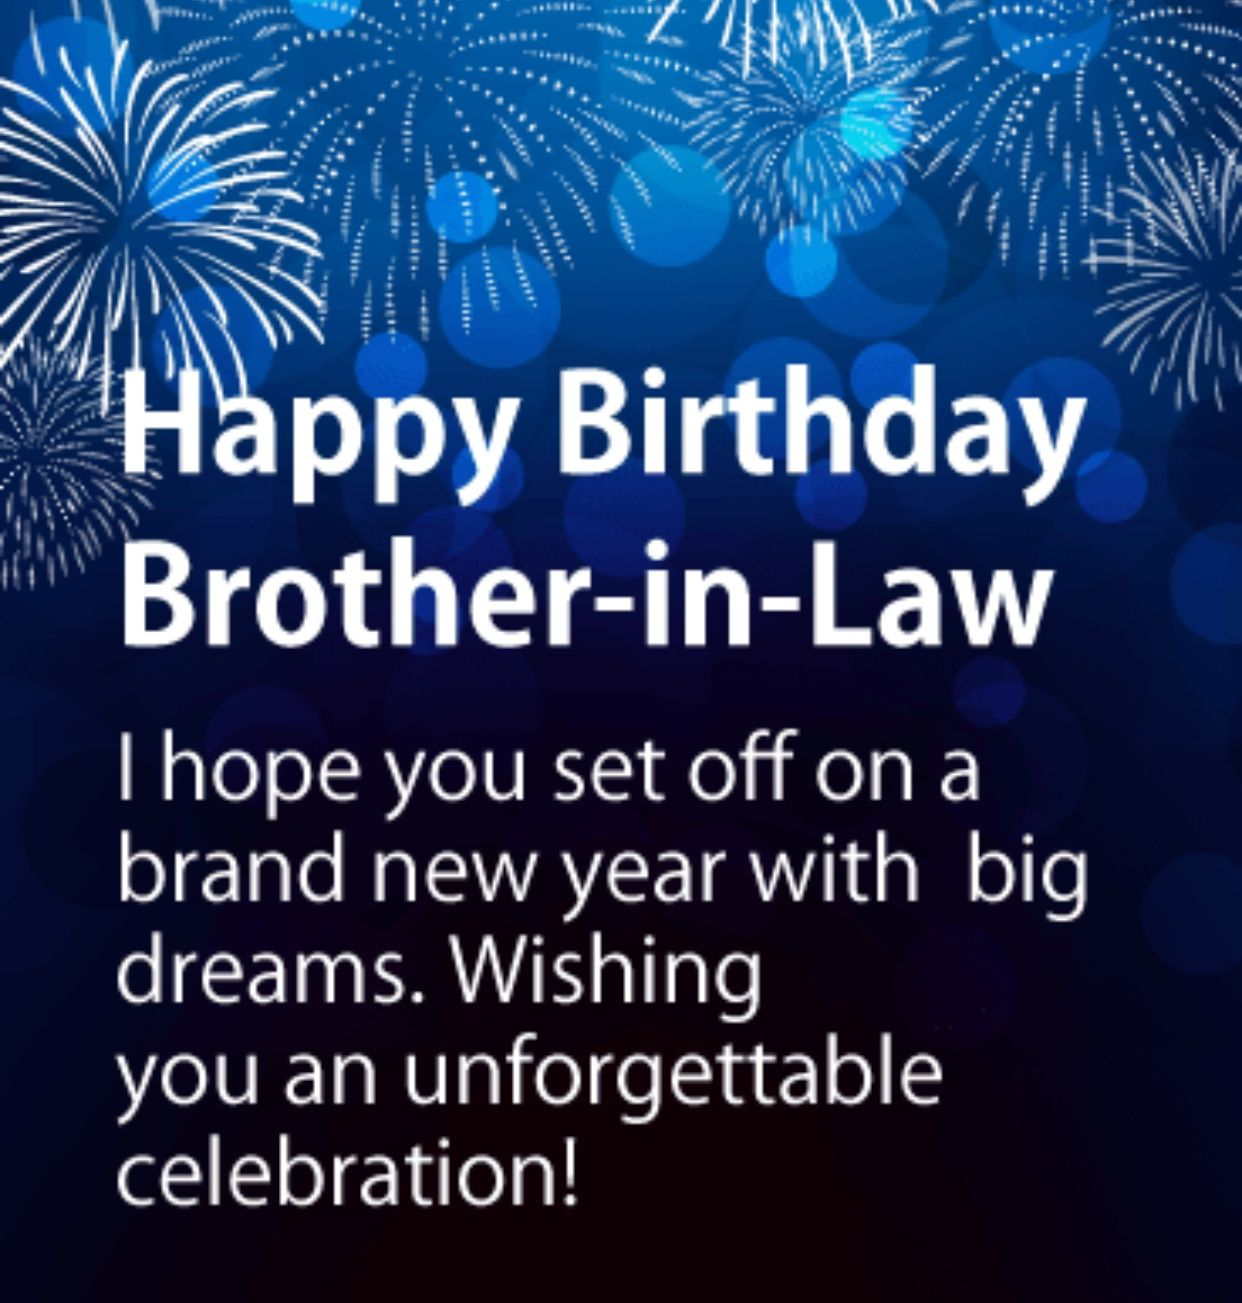 Pin by Dympna Reidy on Brother in law birthday in 2020